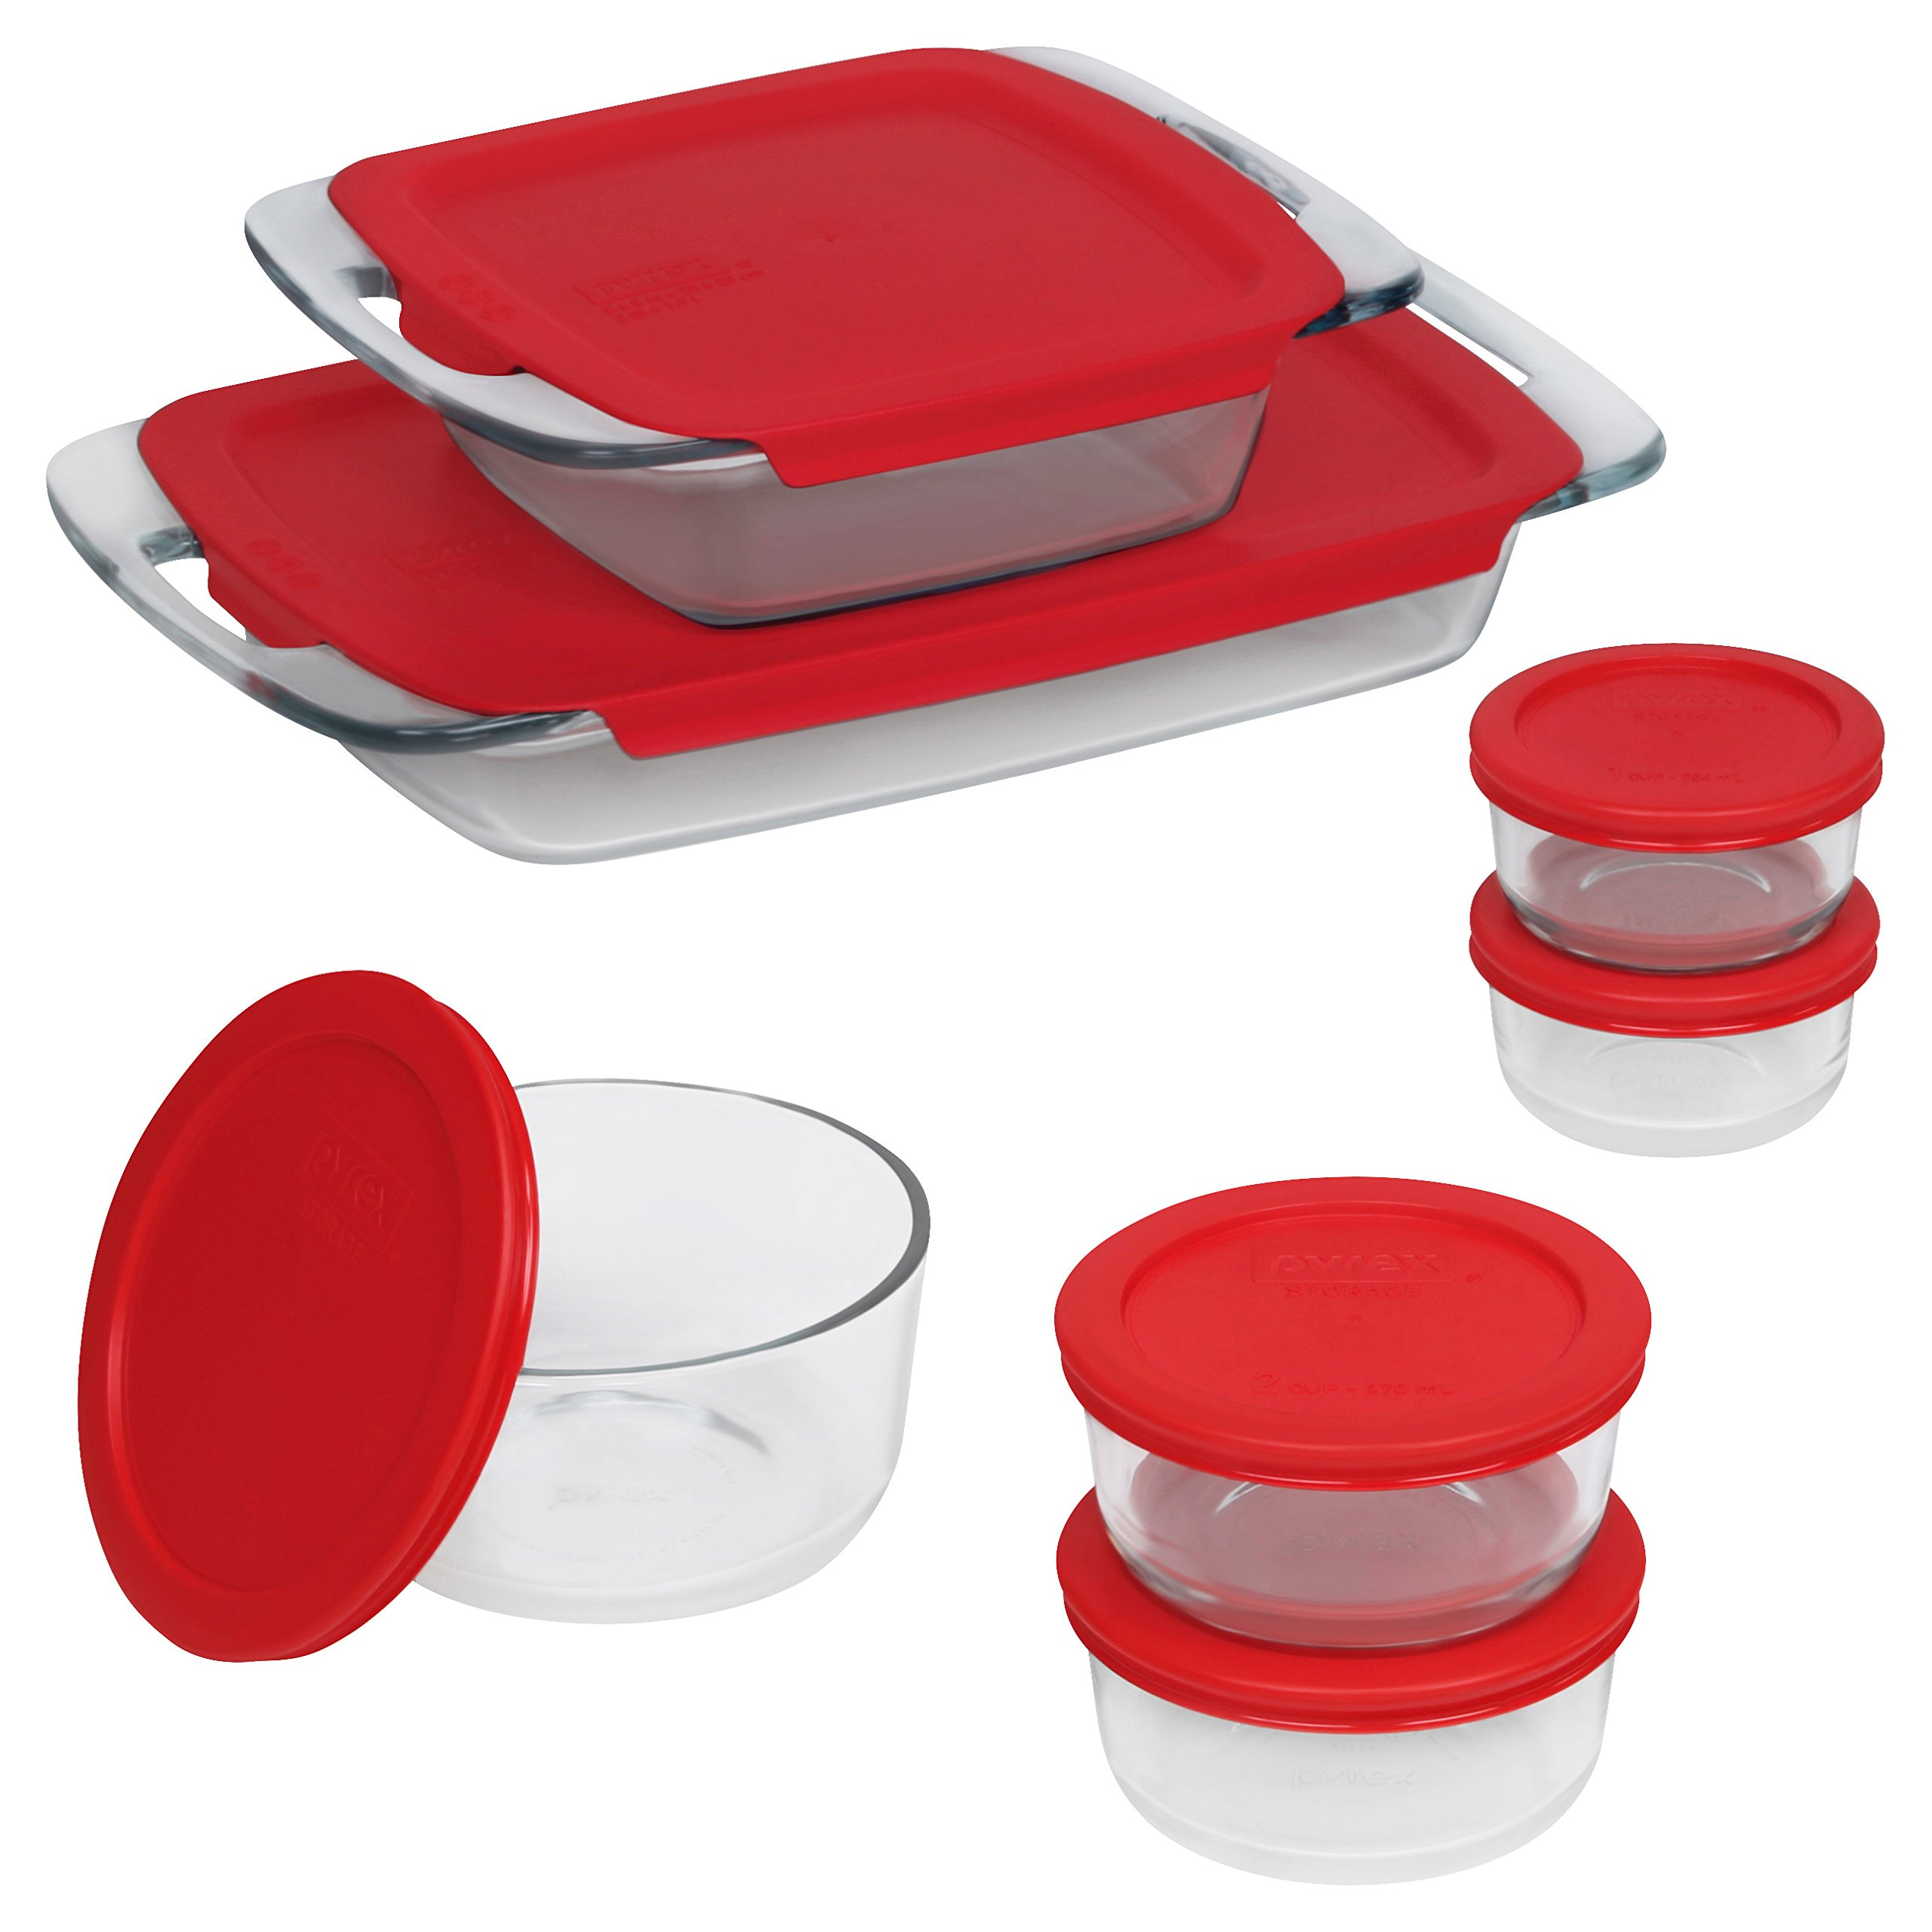 Pyrex Easy Grab Glass Bakeware and Food Container Set (14-Piece) by Pyrex